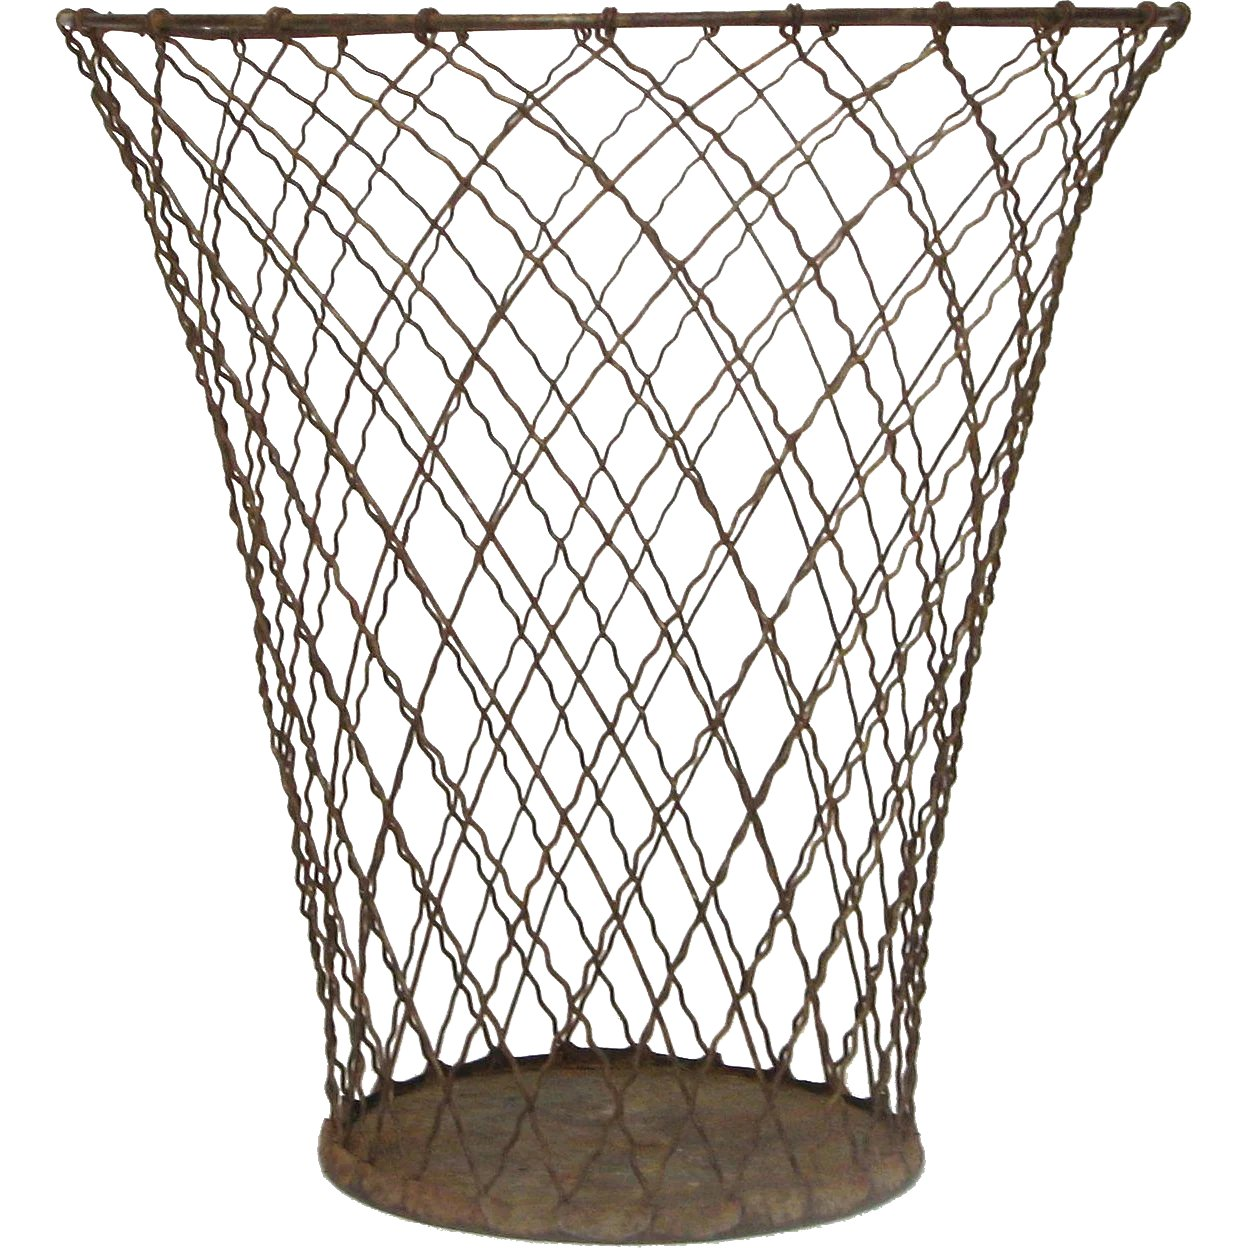 Shabby Chic Waste Baskets Mid Century Wire Waste Basket Paper Bin Garbage Pail Umbrella